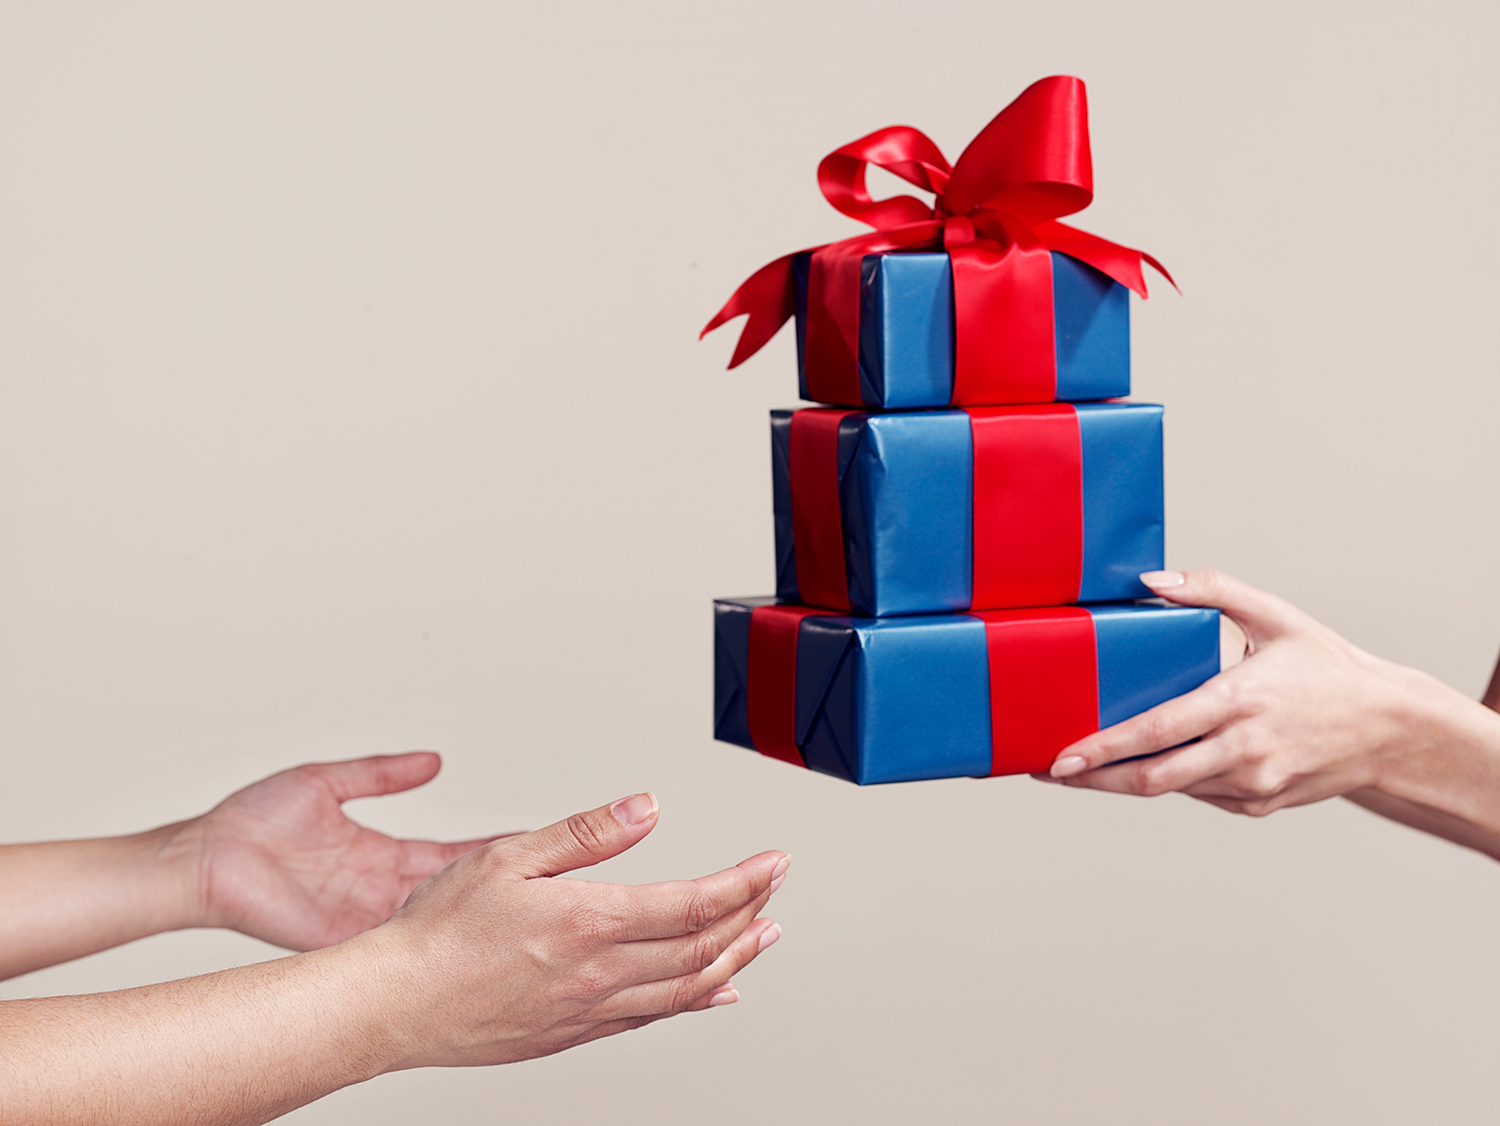 What to Do With Gifts You Don't Want